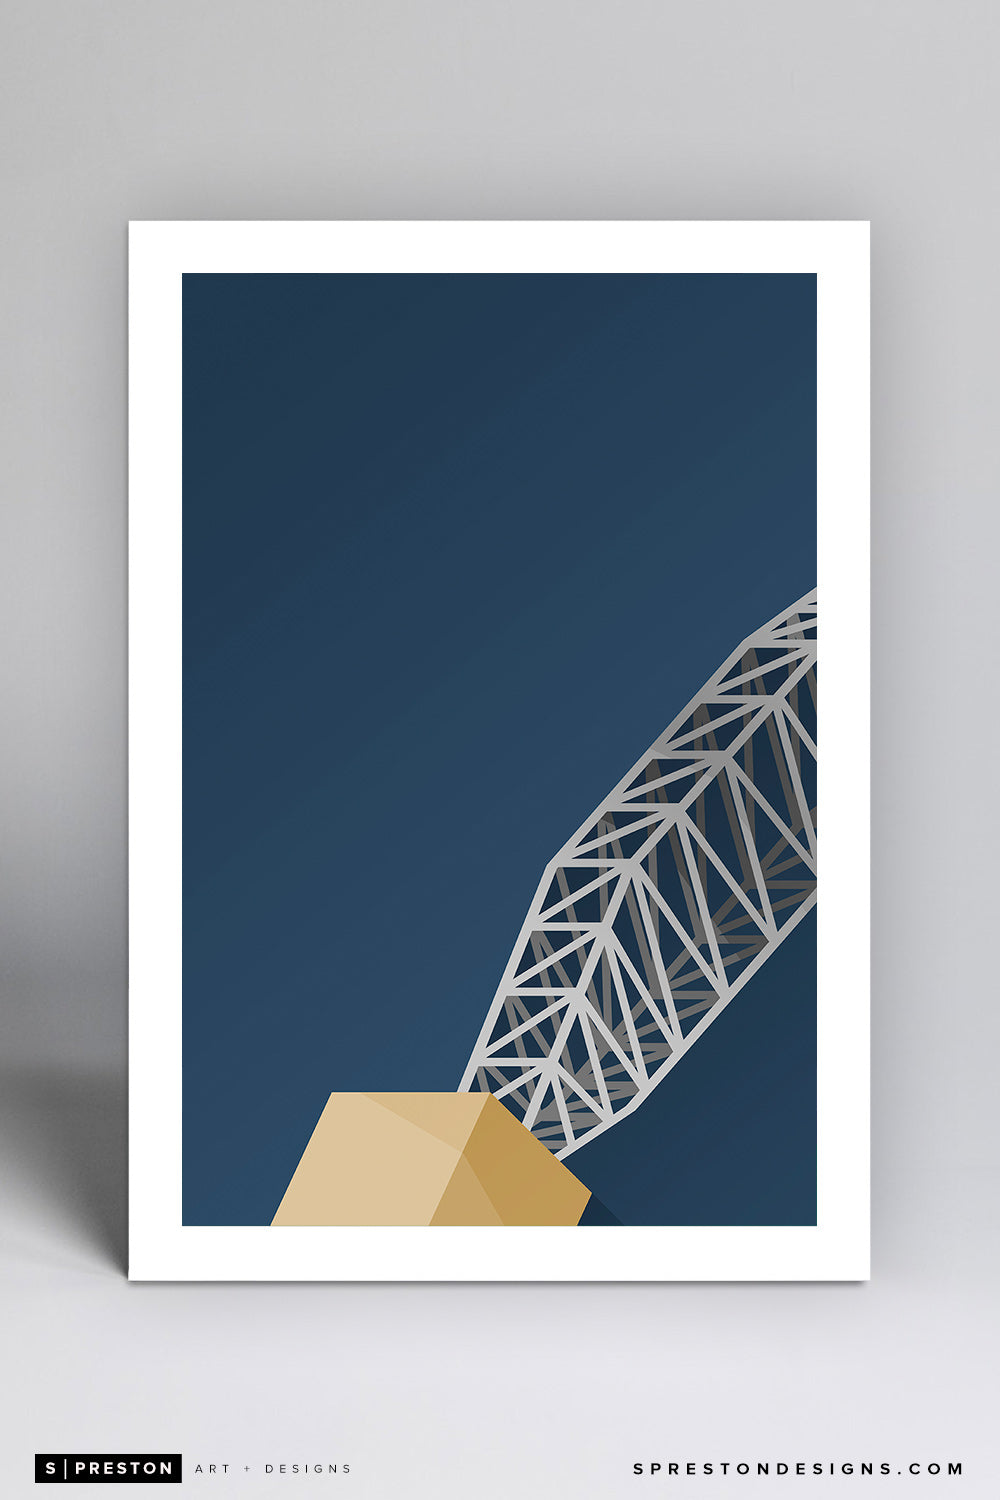 Minimalist AT&T Stadium (anchor) Art Print - Dallas Cowboys - S. Preston Art + Designs